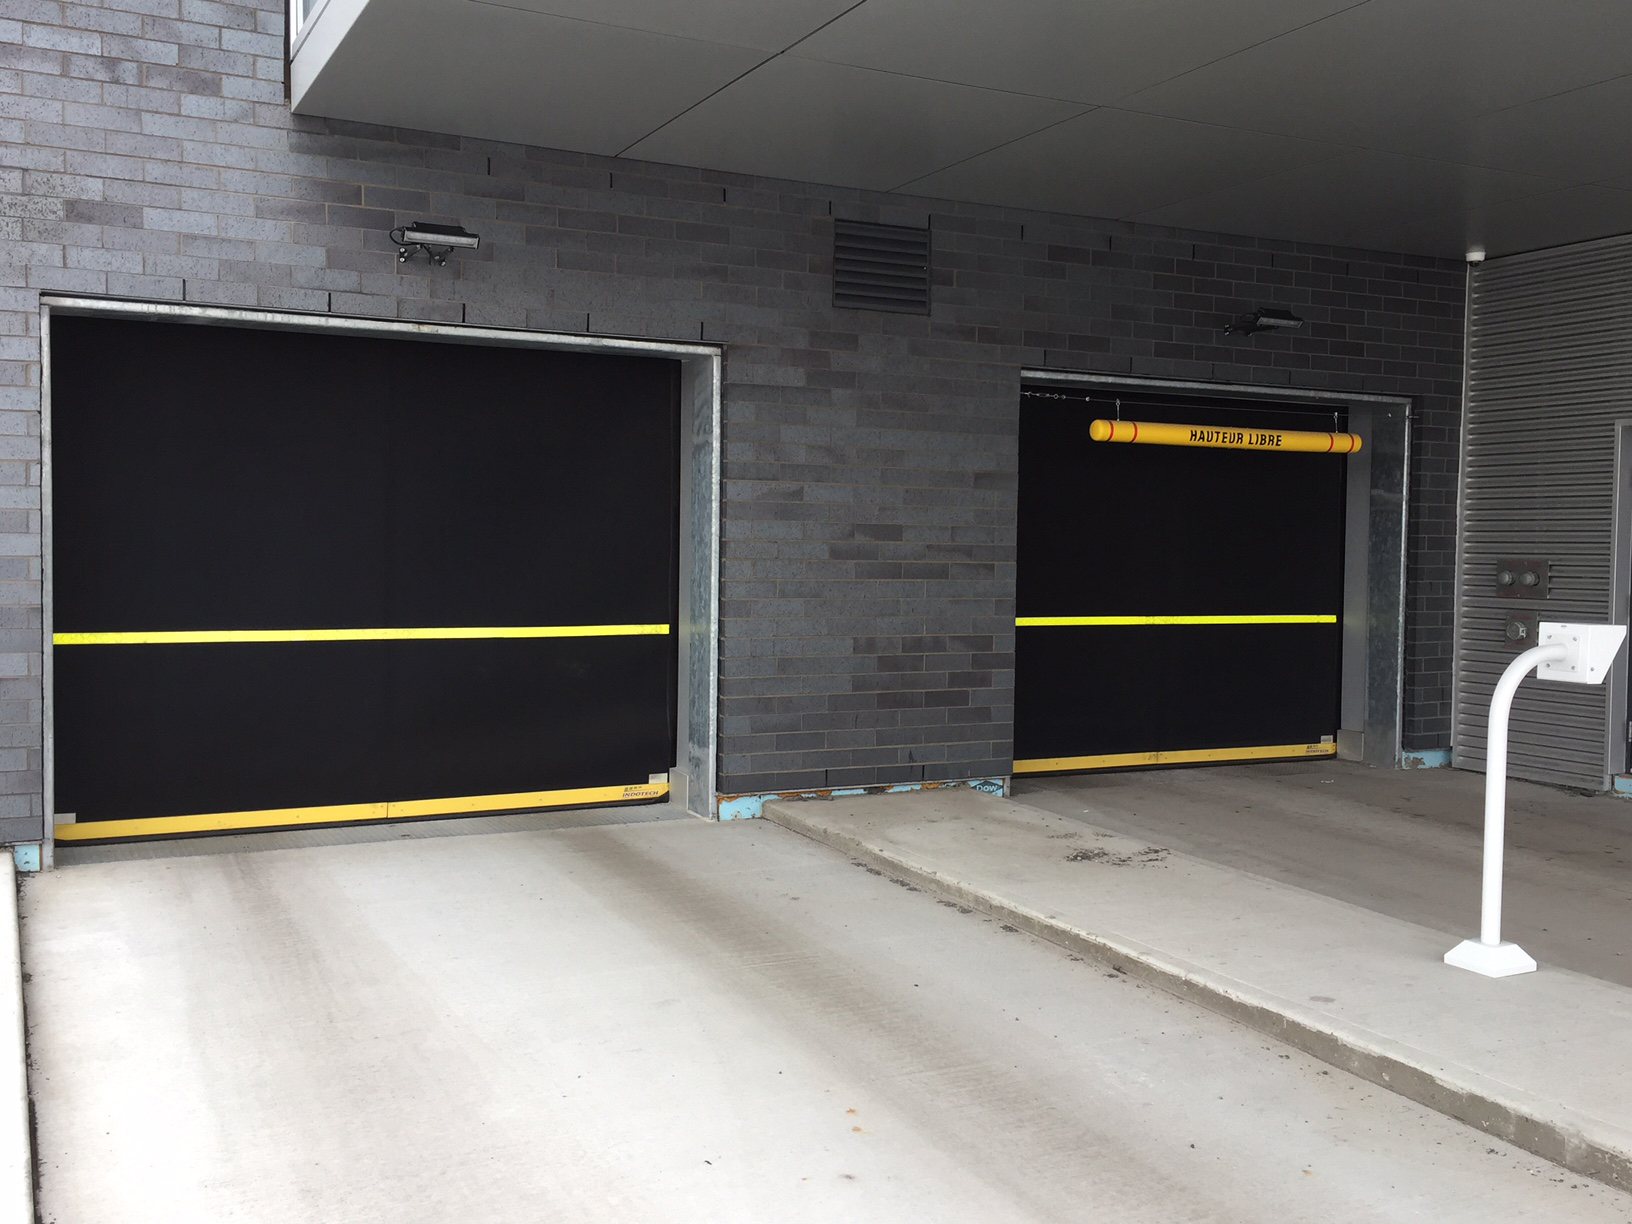 The leader in Industrial & Commercial Garage Doors